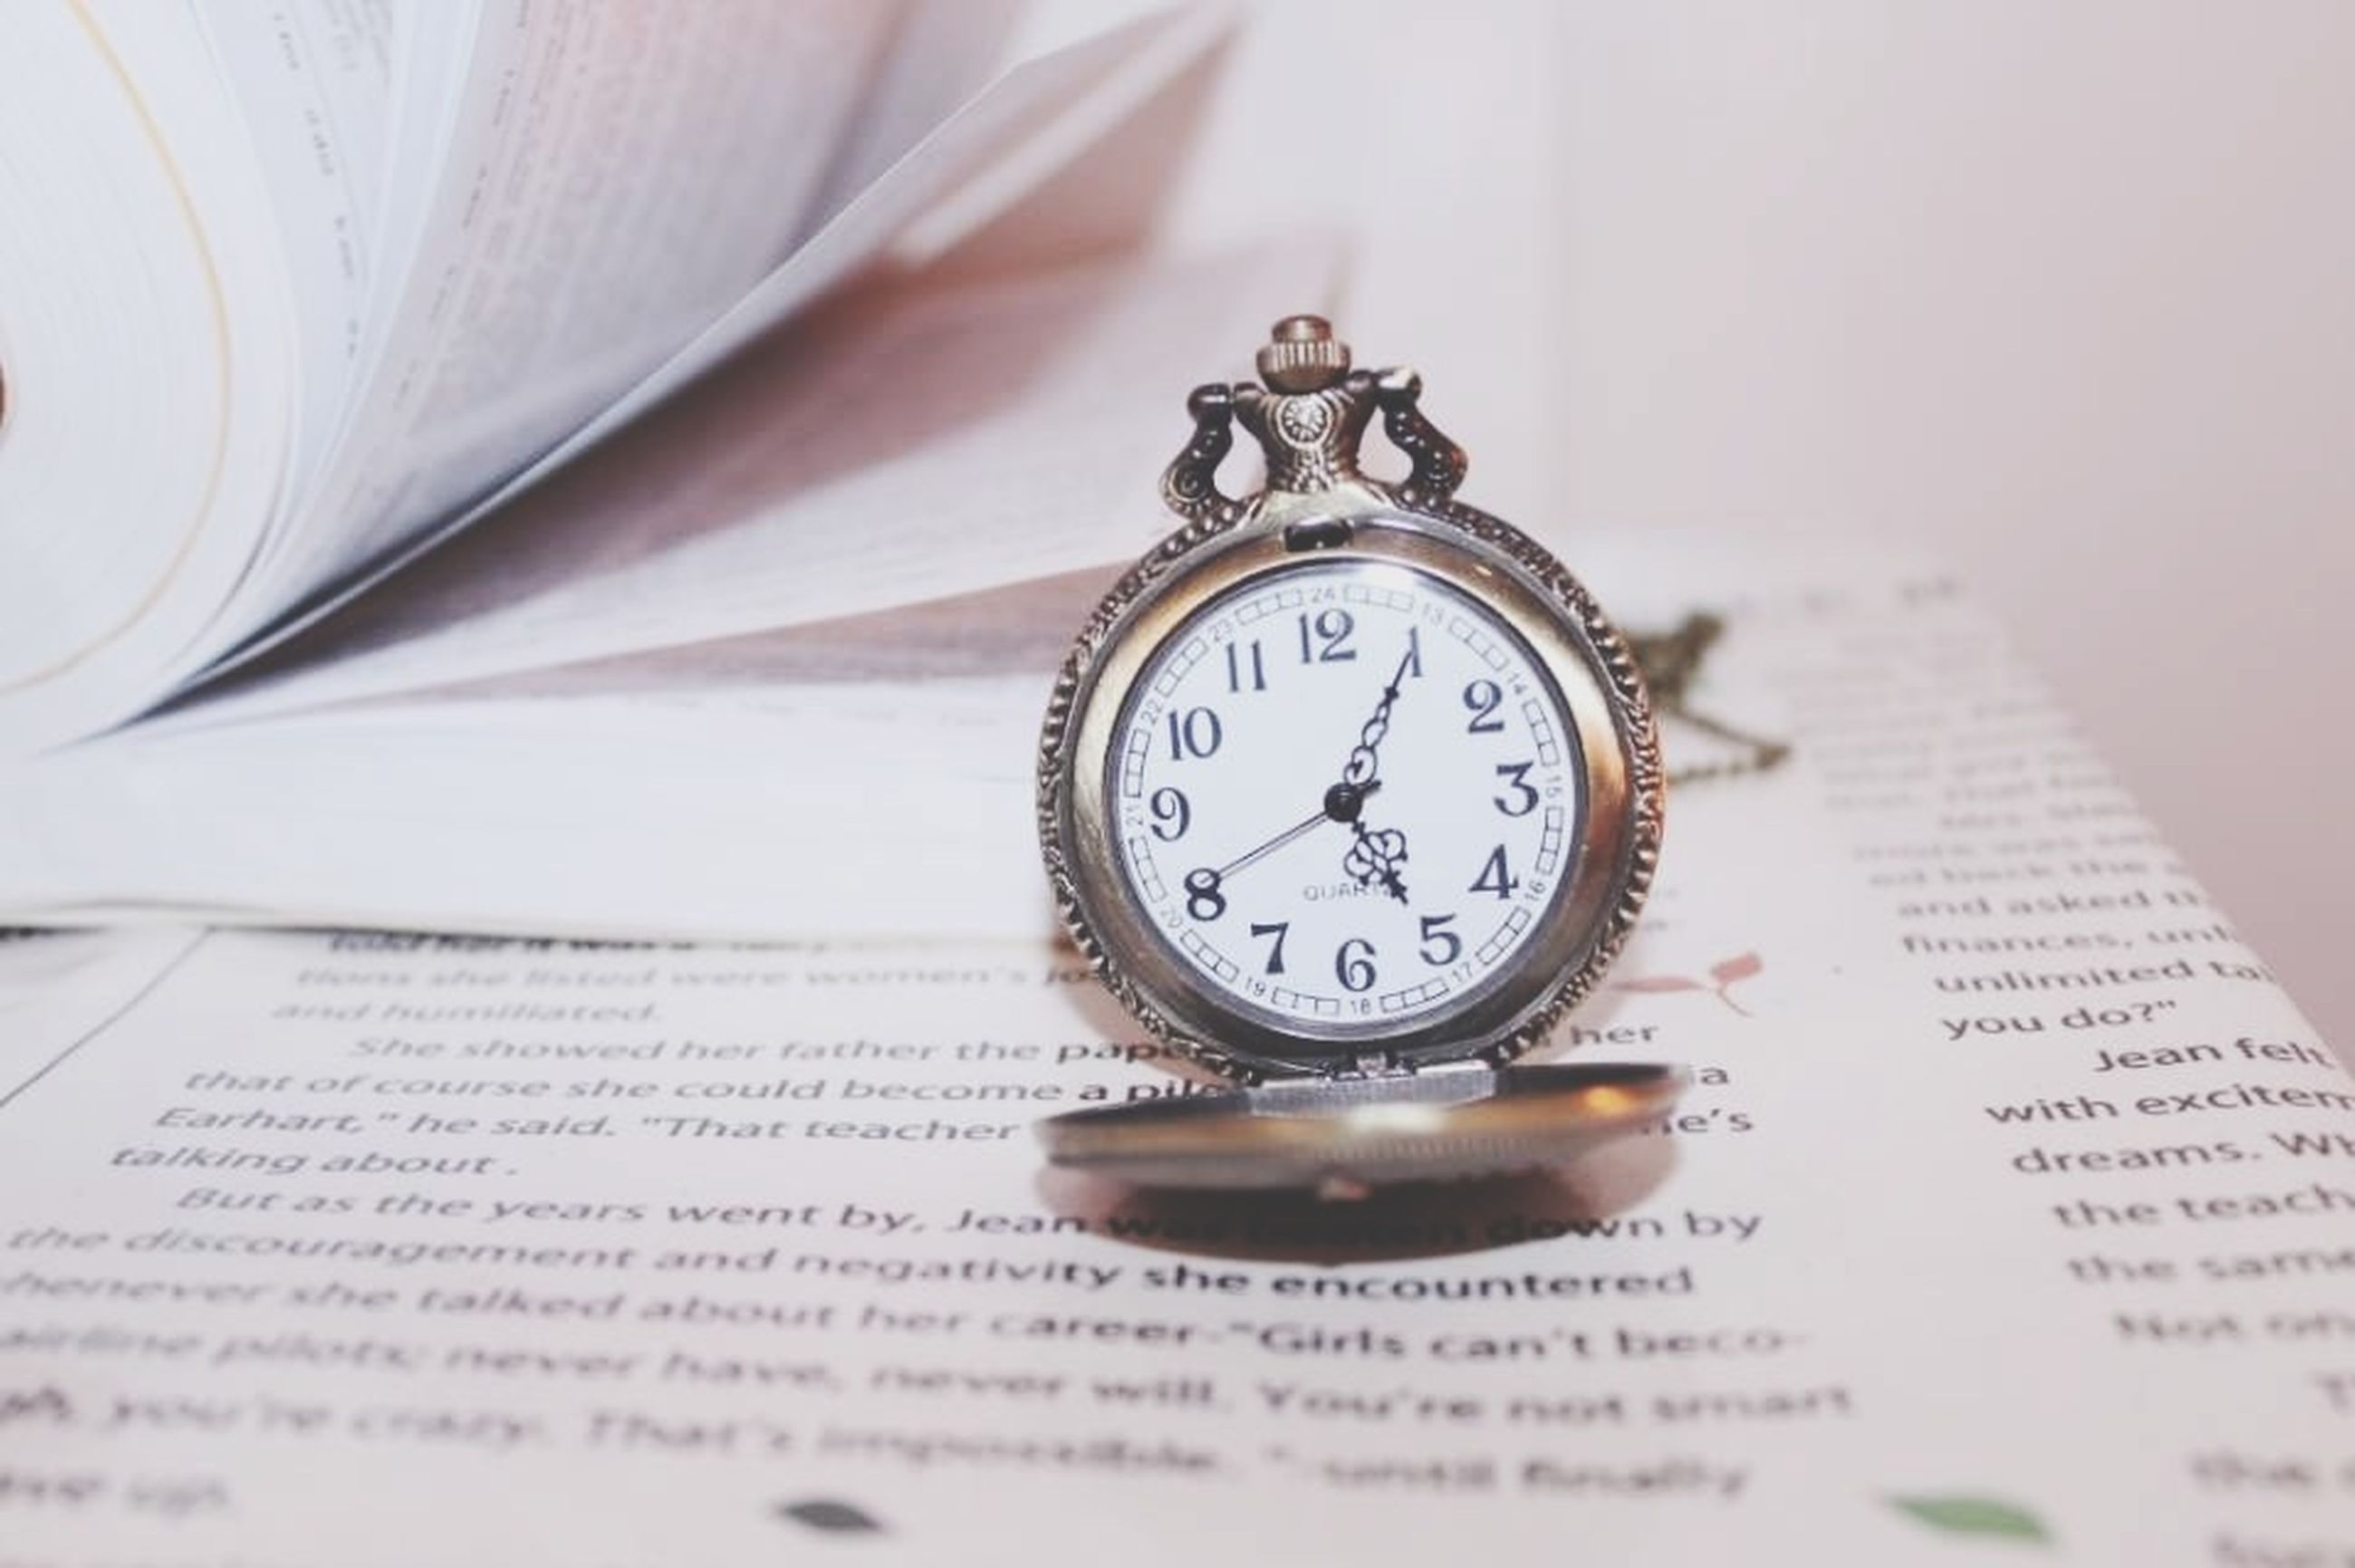 indoors, time, clock, number, communication, text, clock face, close-up, old-fashioned, accuracy, retro styled, instrument of time, still life, single object, minute hand, wall clock, table, antique, western script, wealth